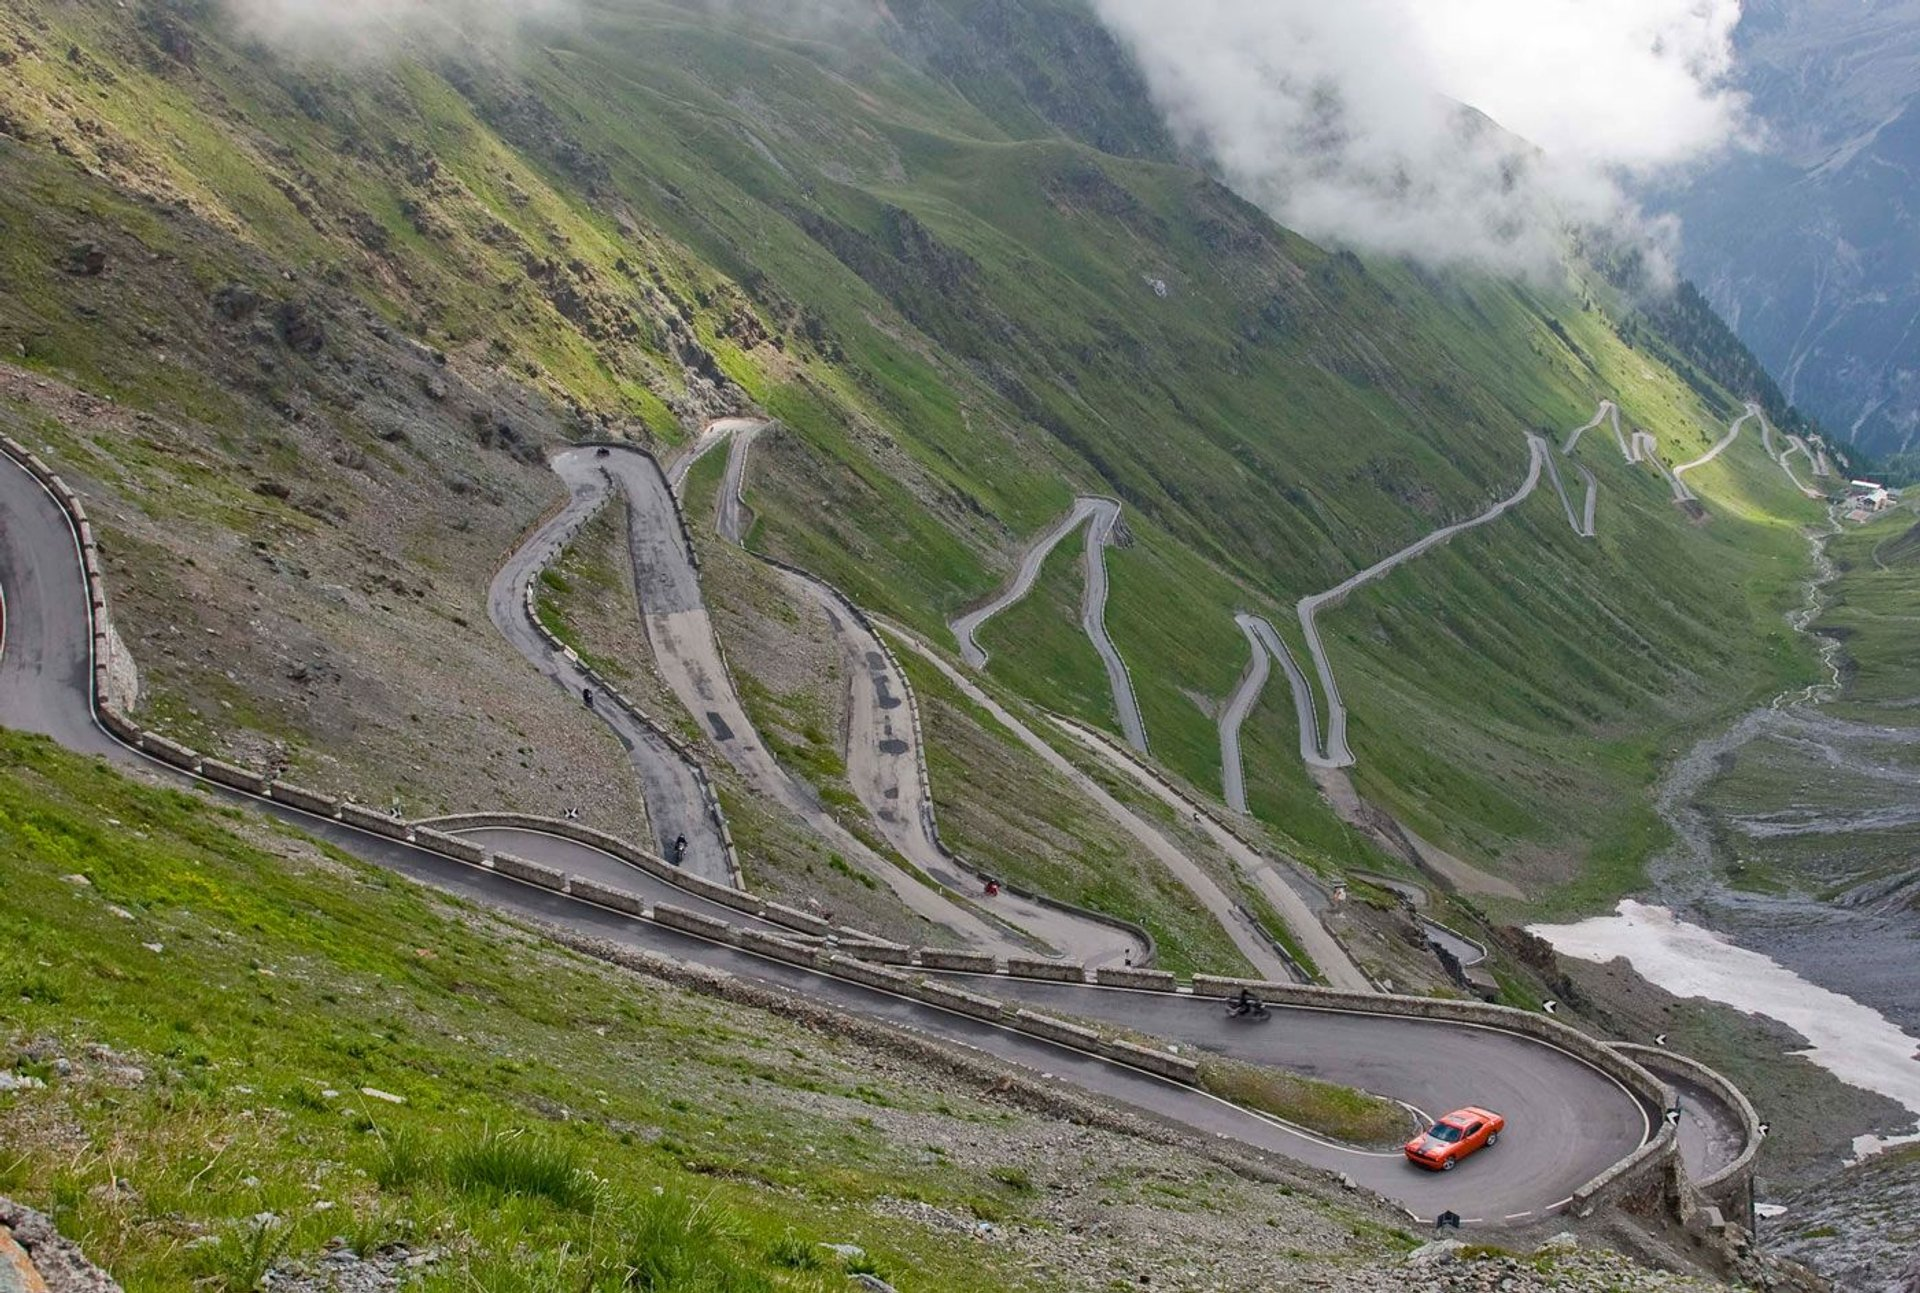 Best time to see Stelvio Pass (Passo dello Stelvio) in Italy